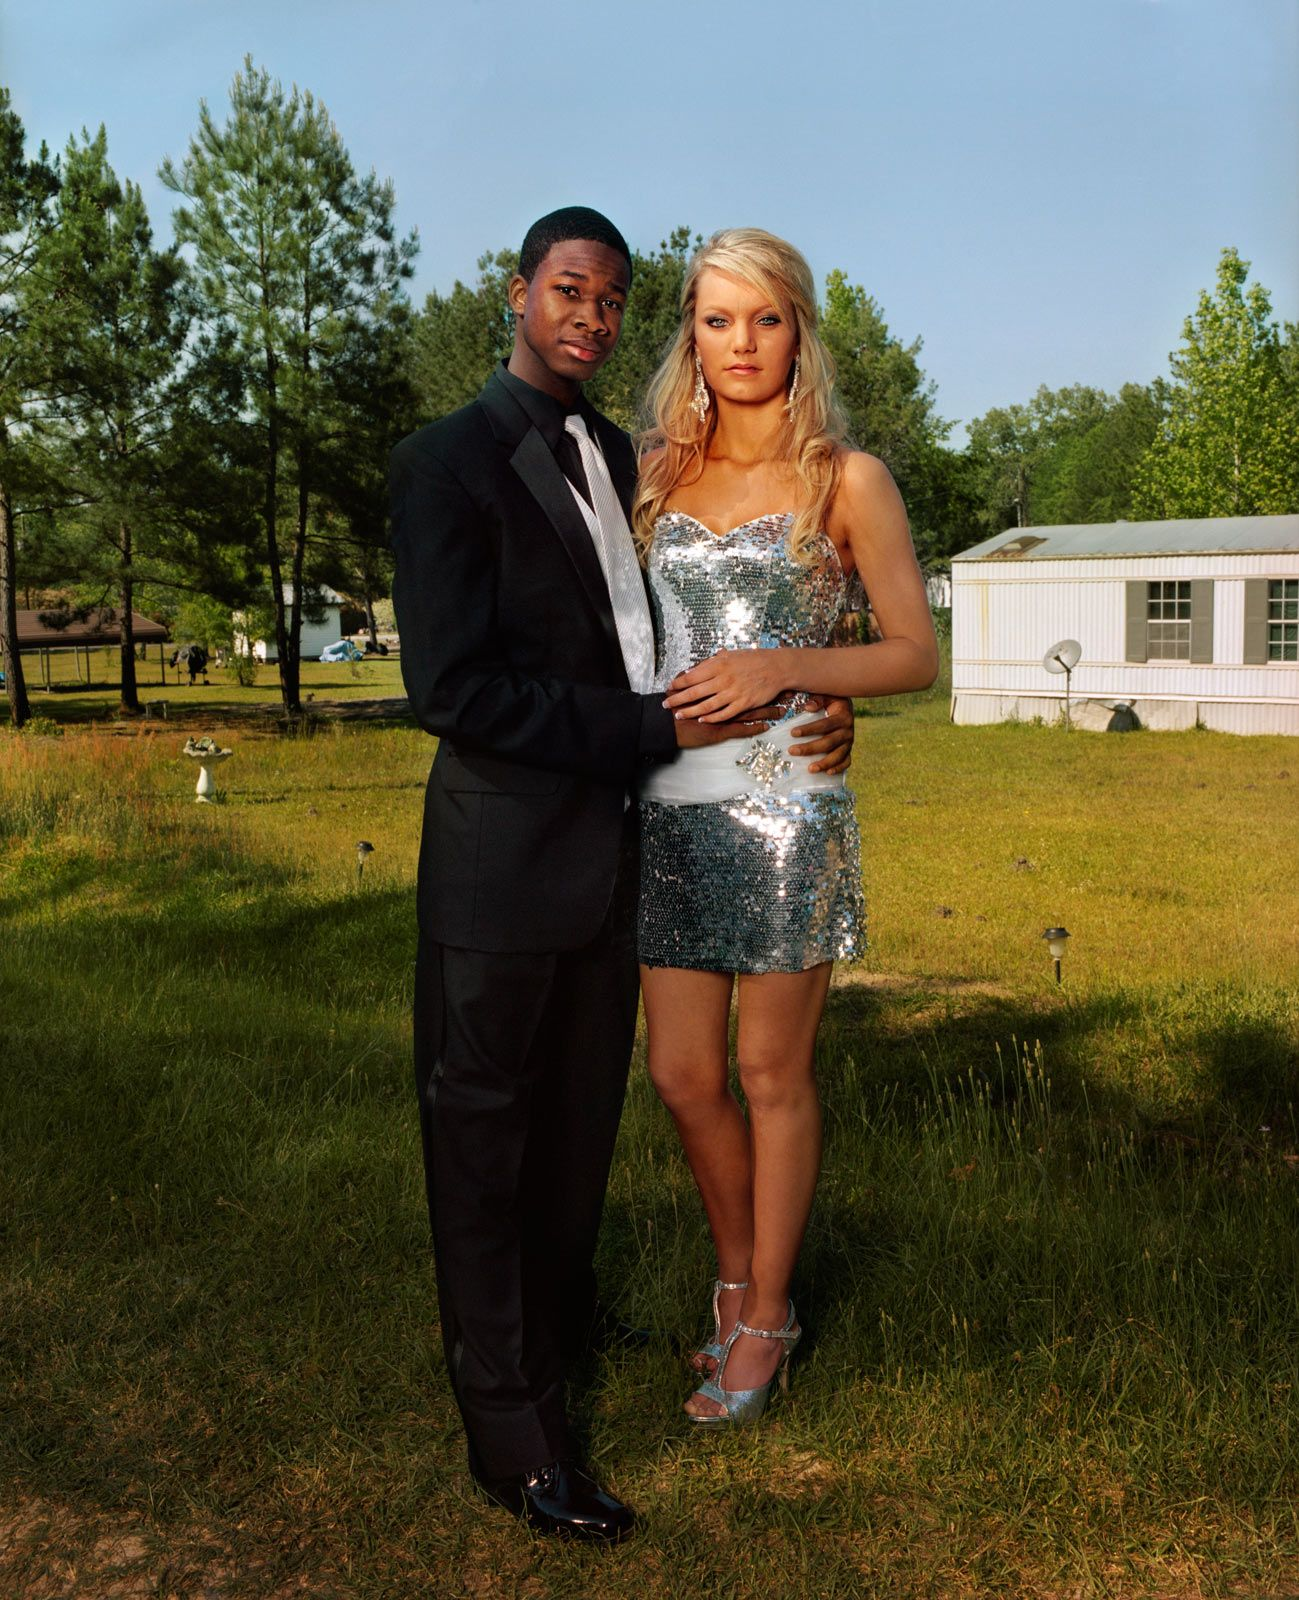 Interracial dating mississippi